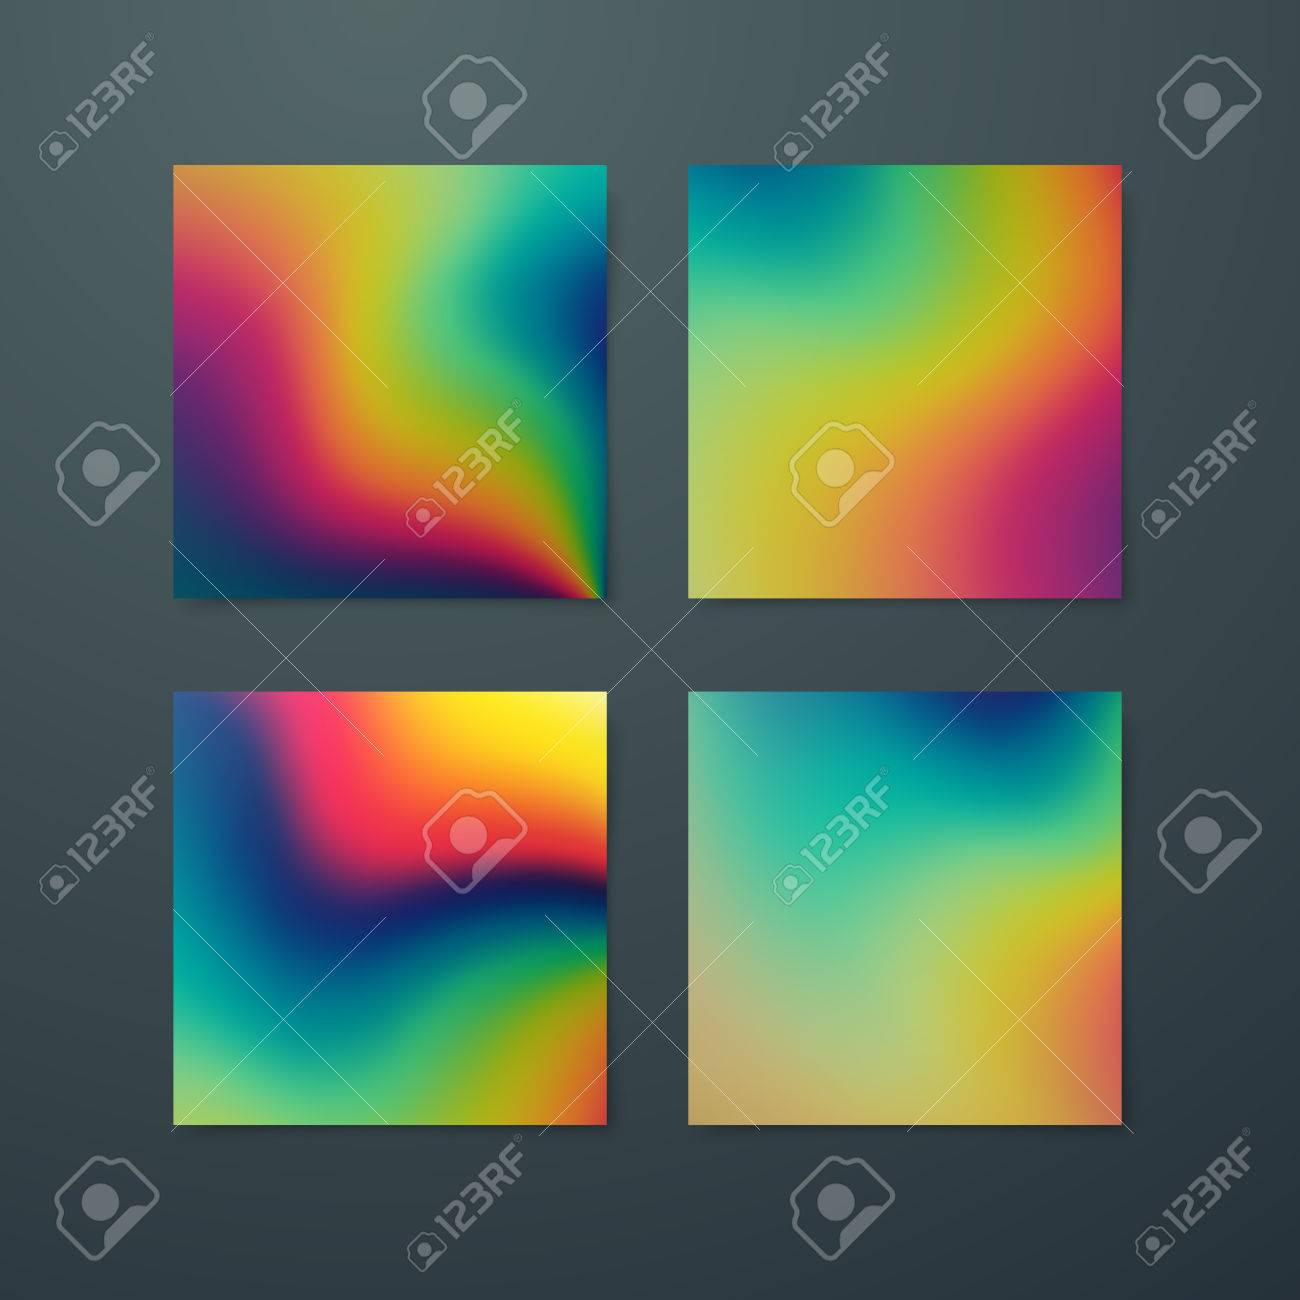 Fluid iridescent multicolored backgrounds. Vector illustration of melted iridescent fluids. Poster set with spectrum neon effect. Applicable for flyer, banner, poster, brochure, card. - 65406362